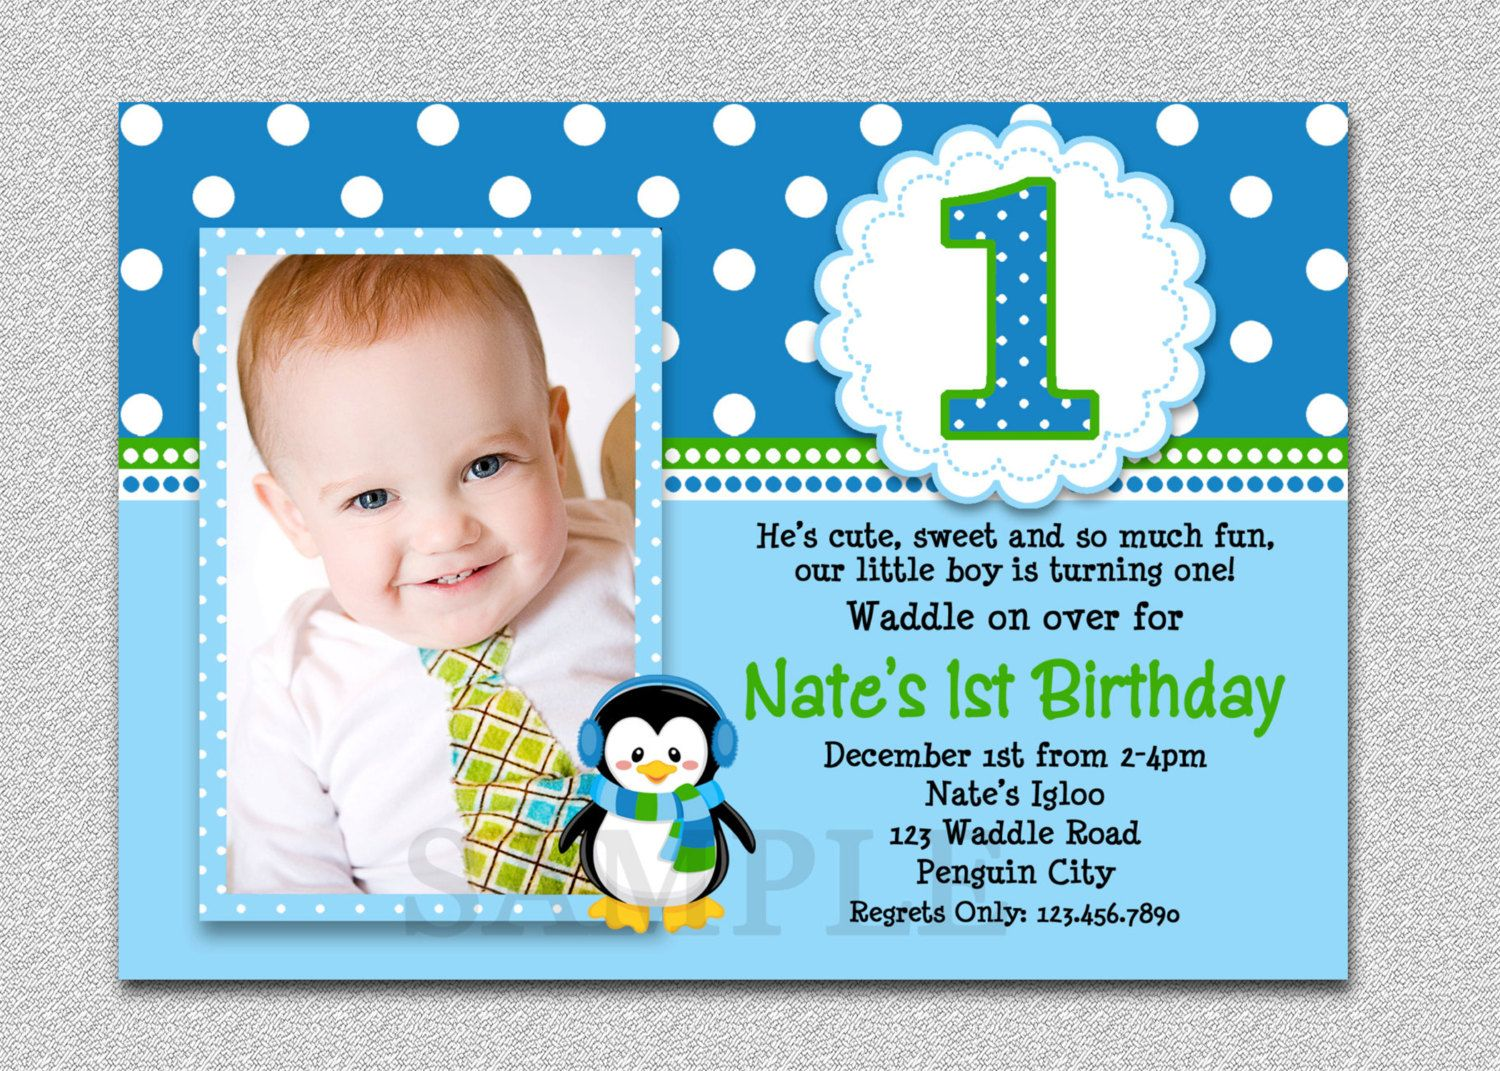 Fun Birthday Invitations for Baby 42